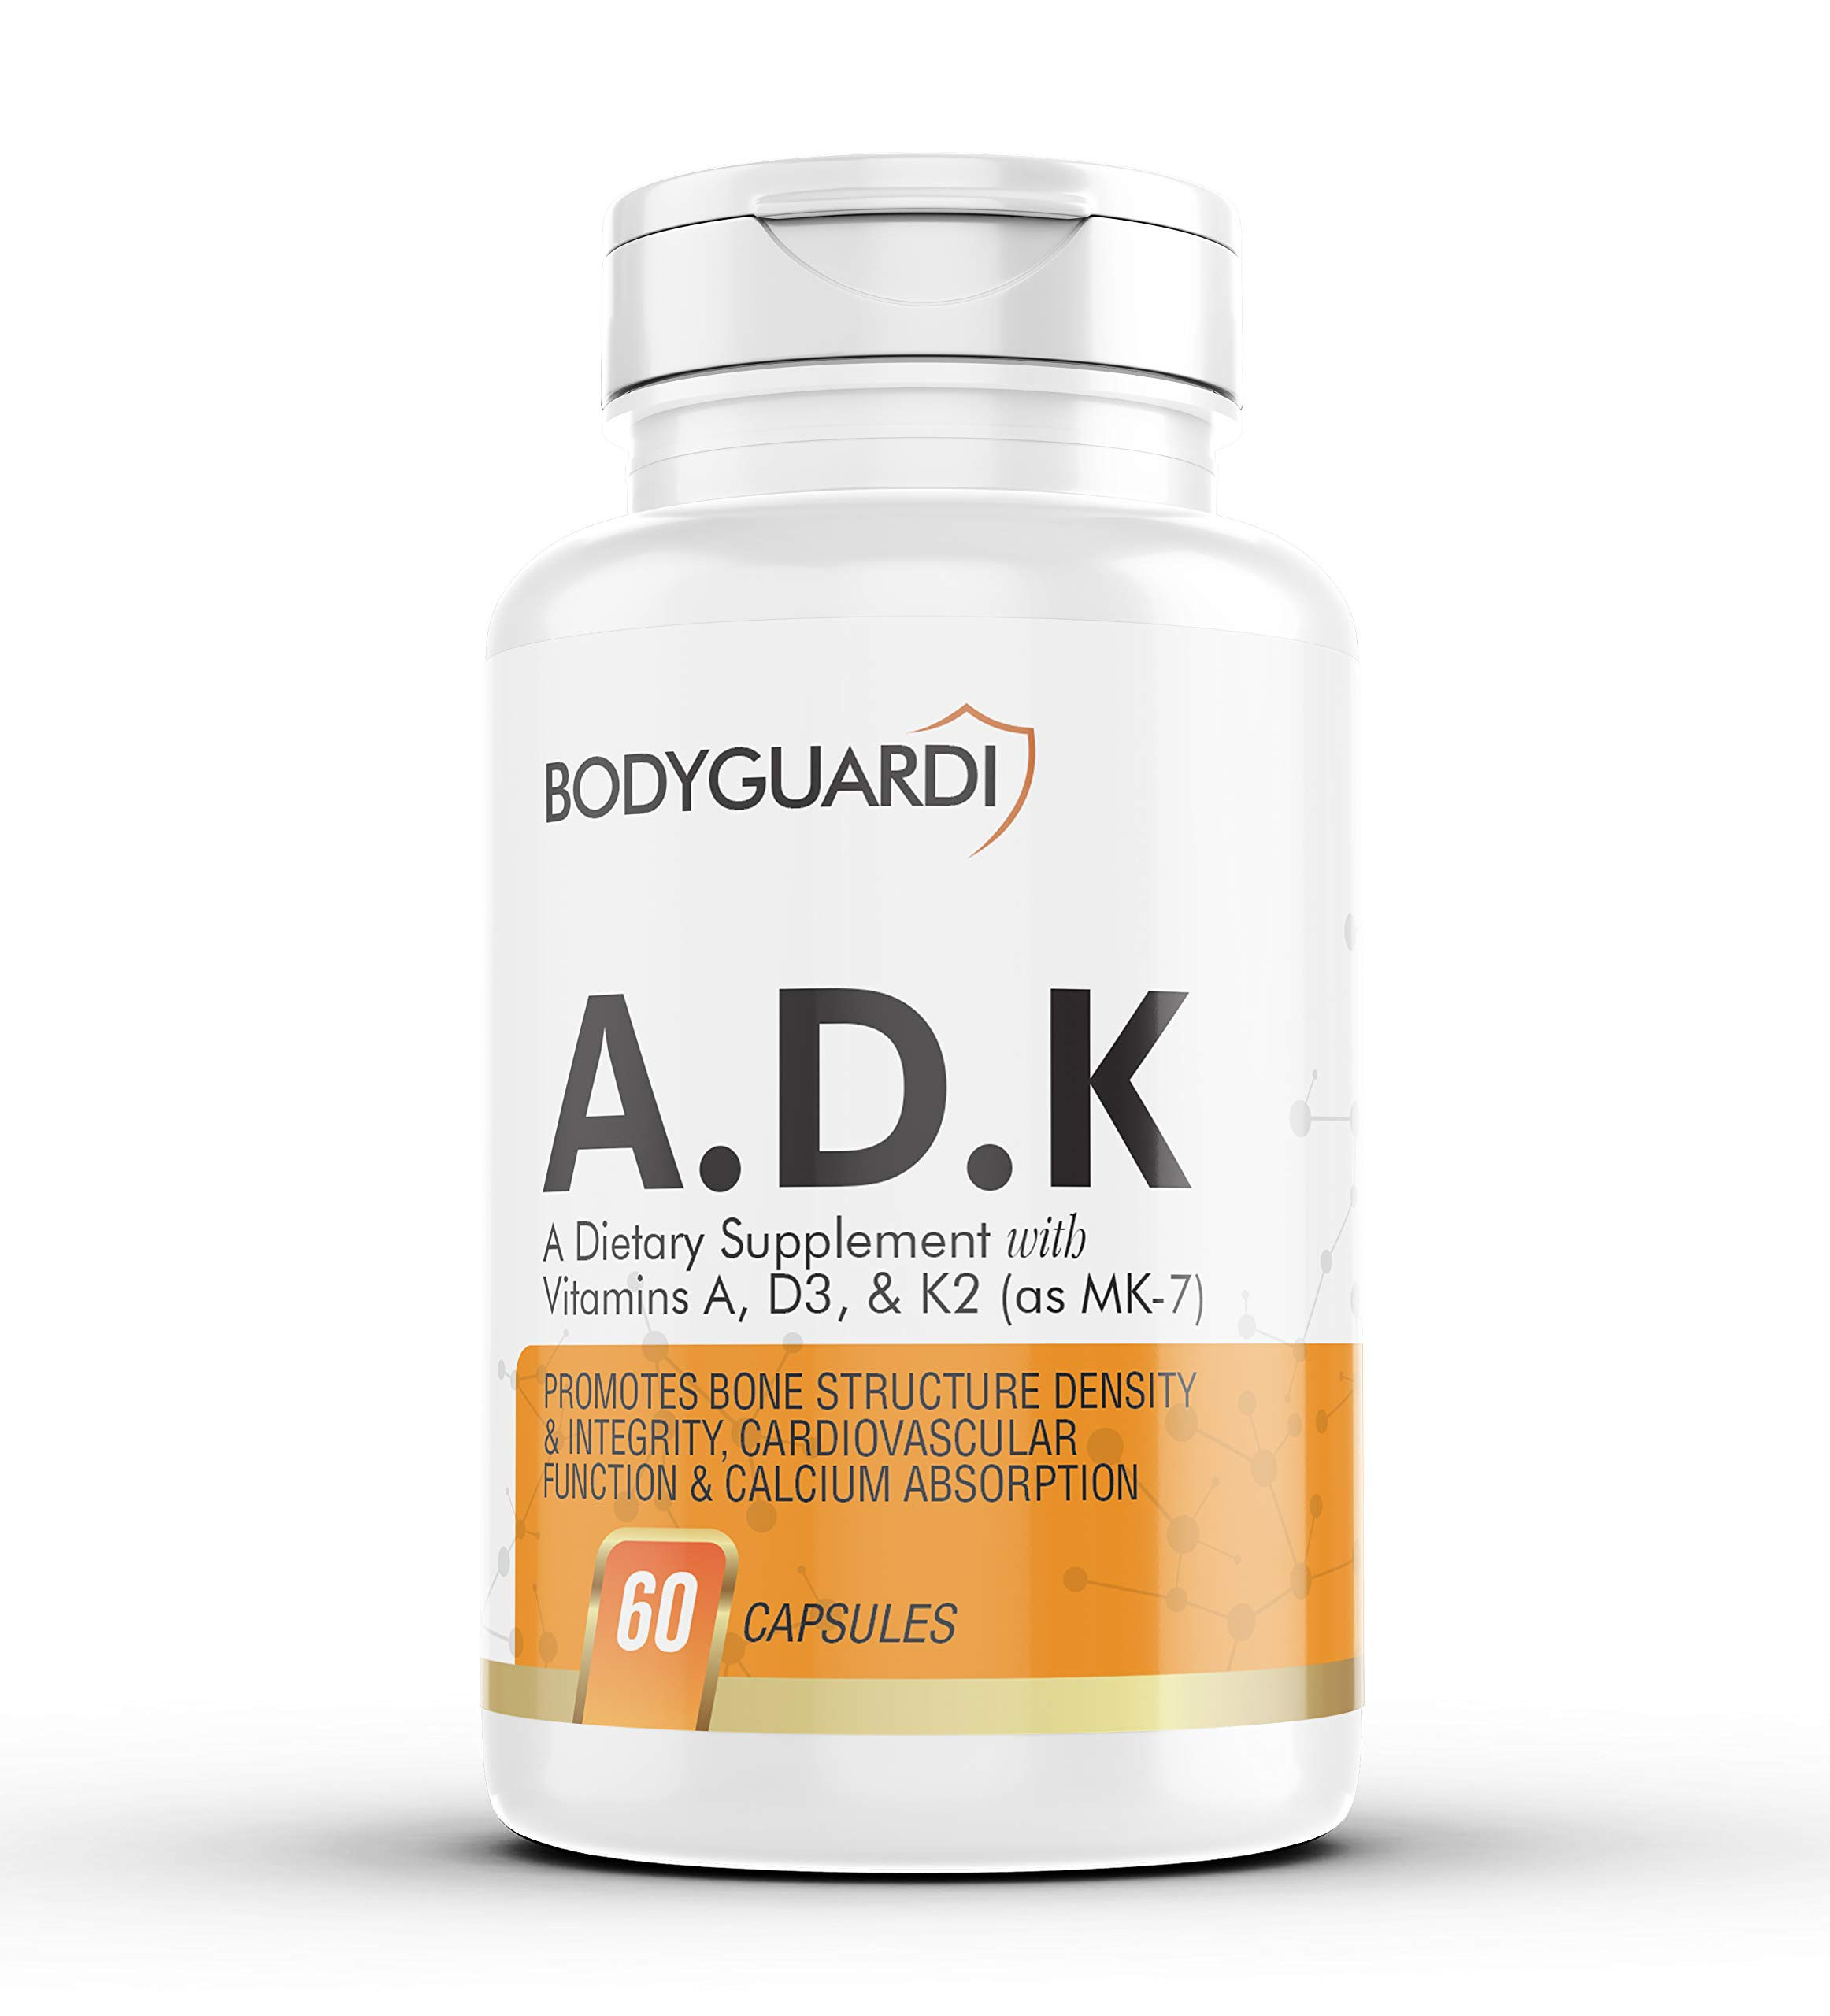 Bodyguardi ADK, K2 and D3 Vitamin Supplement: A-D-K with Vitamins A, D3, K2 as MK7 for Enhanced Calcium Absorption - High Potency A.D.K for Heart Health and Bones, Teeth, Skin - 60 Vegetarian Capsules by Bodyguardi